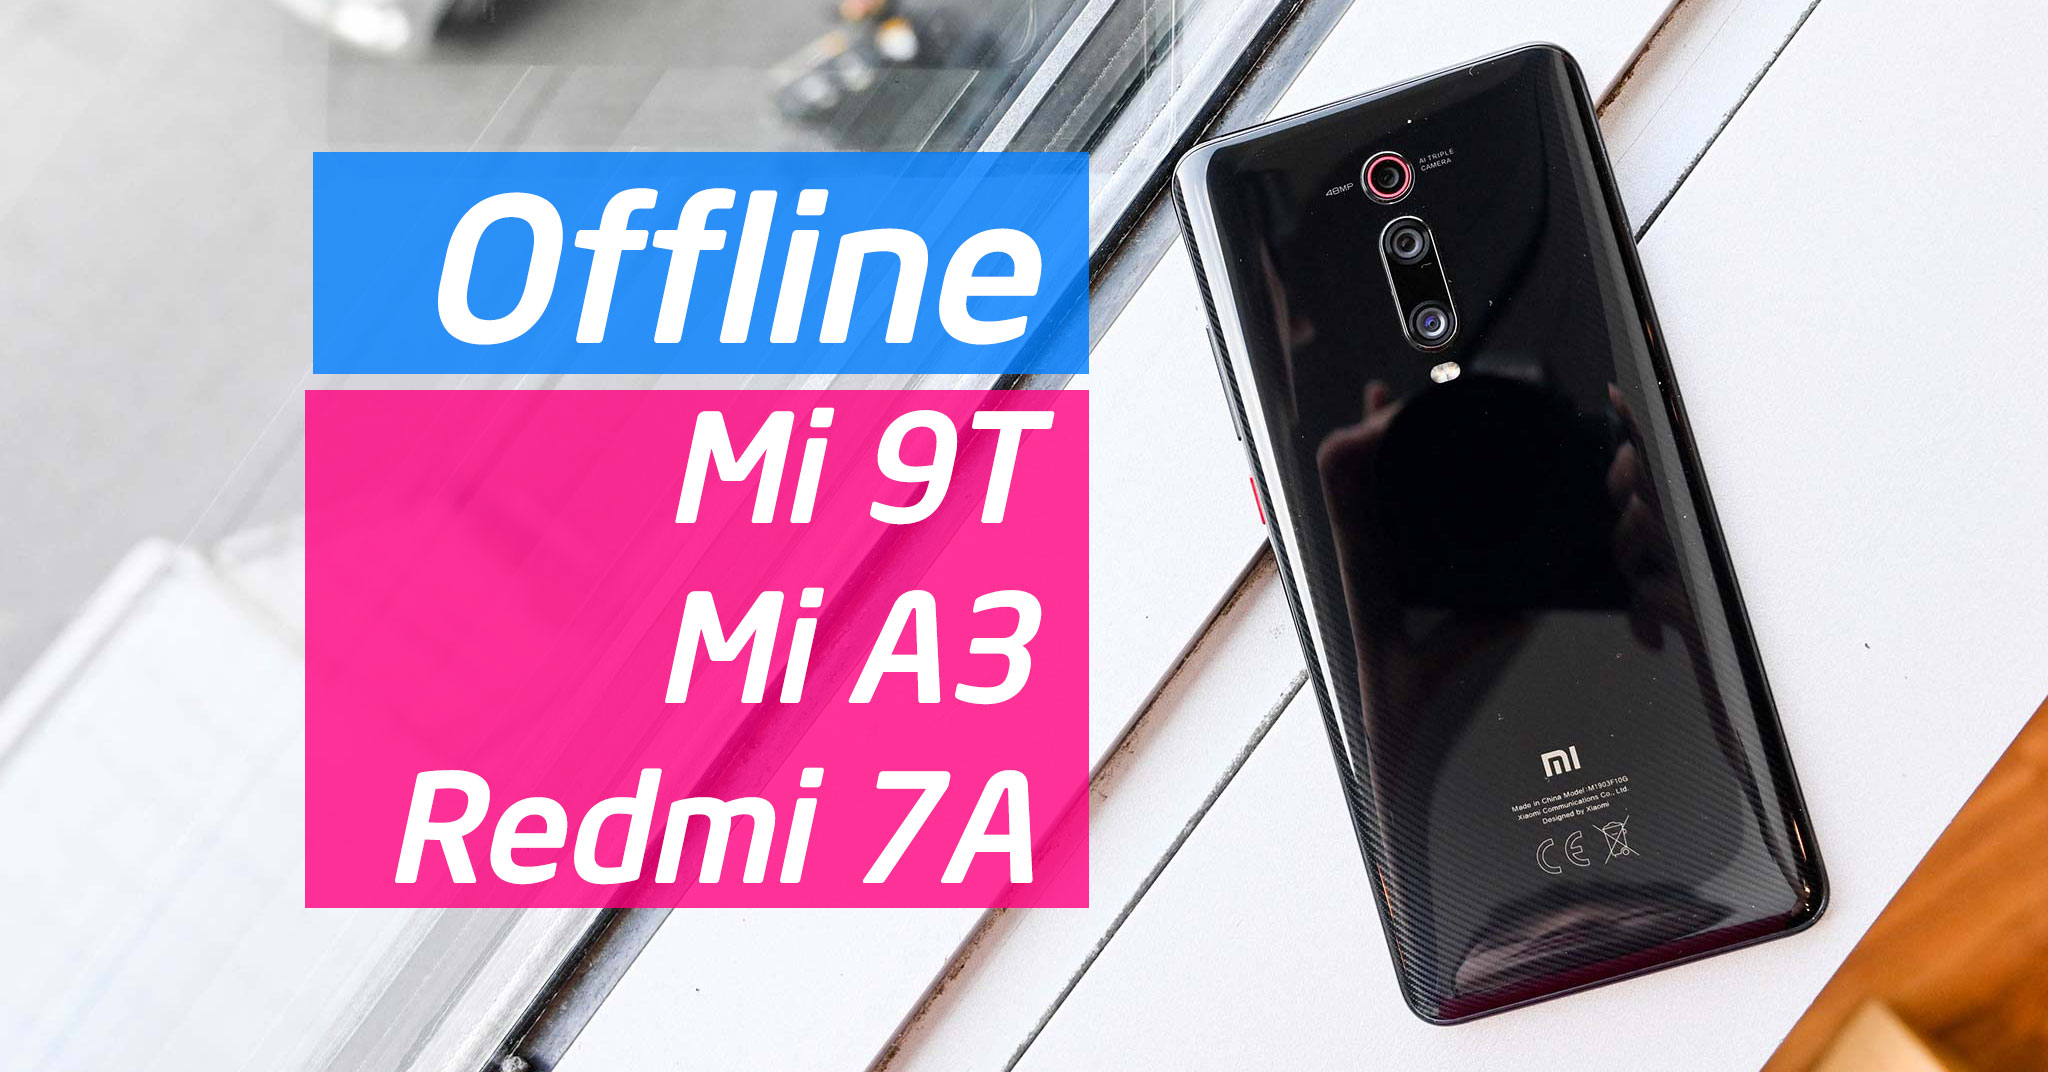 Sunday morning: Invite you to attend offline Xiaomi Mi 9T, Mi A3 and Redmi 7A, have good gifts